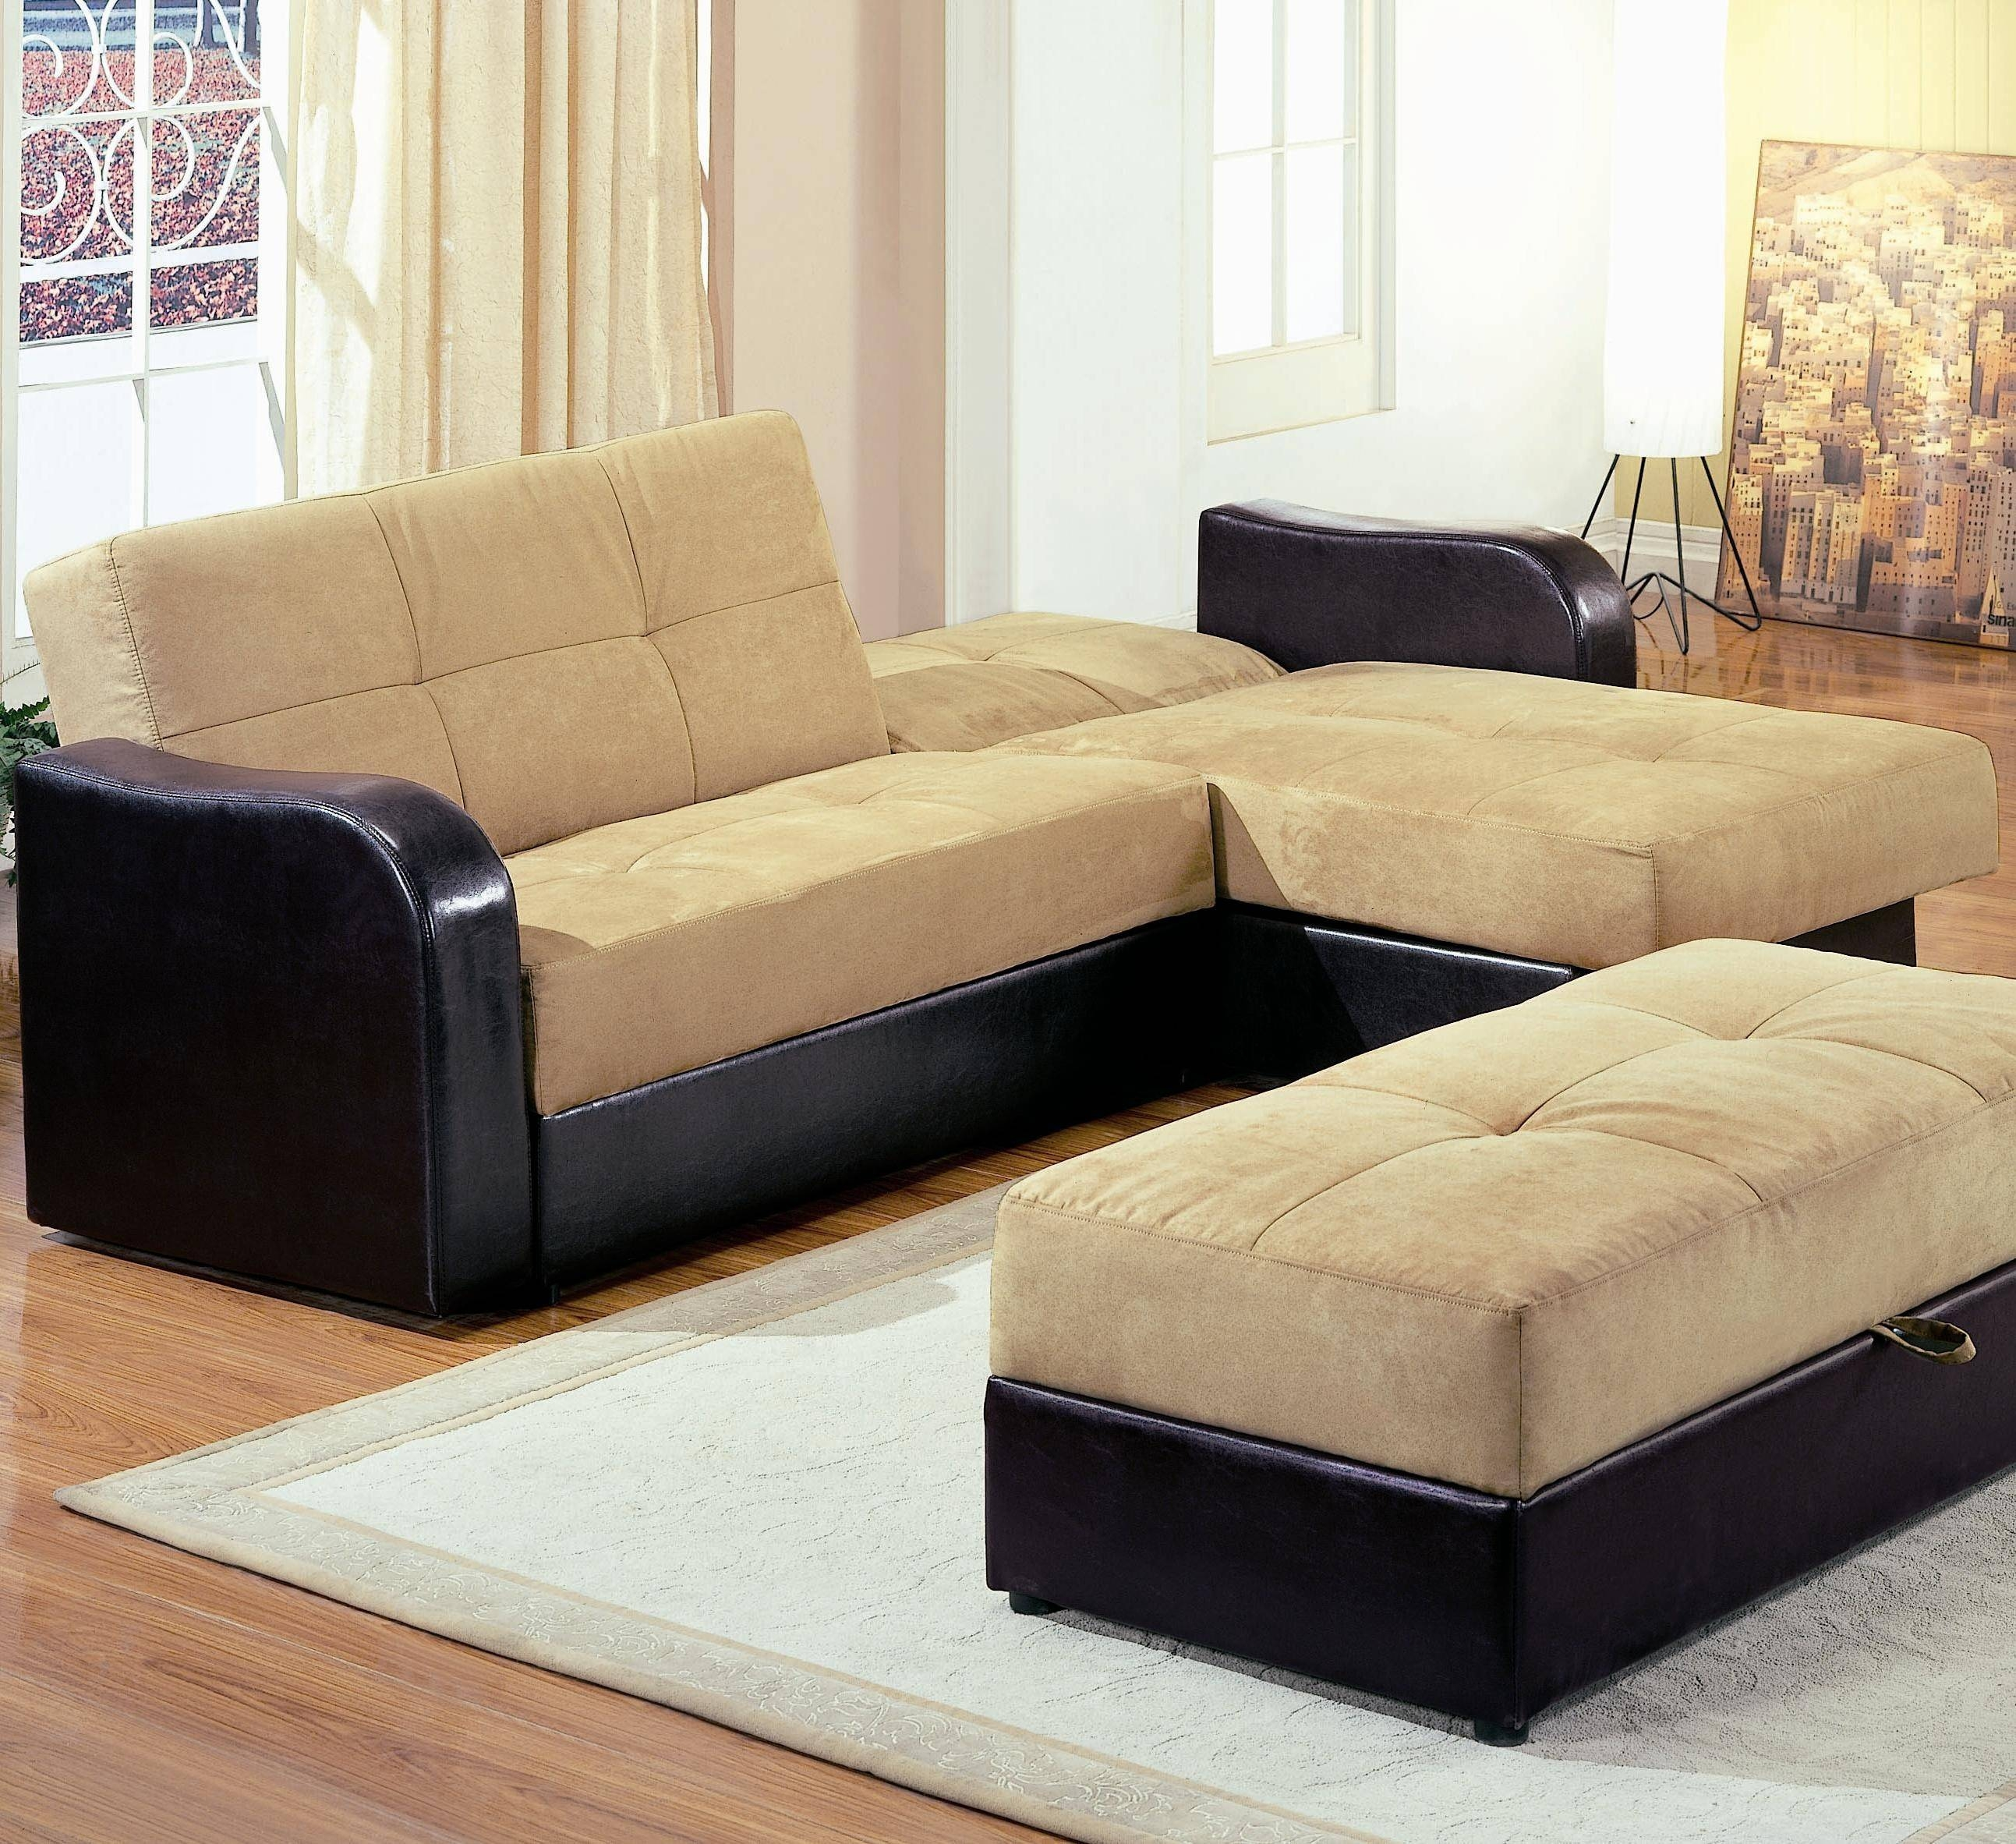 Sofas: Striking Cheap Sofa Sleepers For Small Living Spaces In Sectional Sofas With Sleeper And Chaise (View 28 of 30)